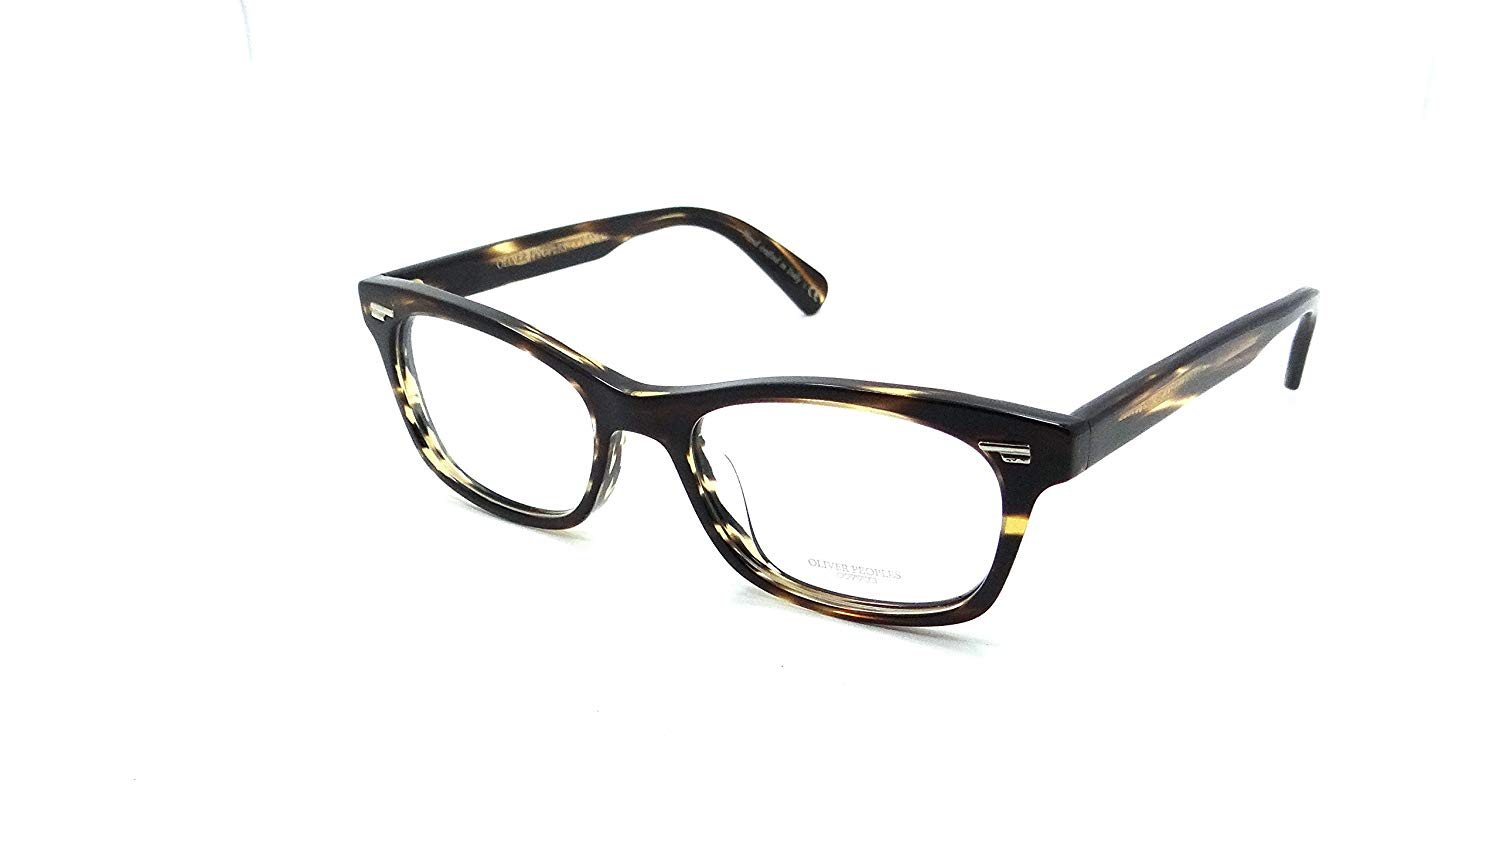 Oliver Peoples Rx Eyeglasses Frames Wilmore 5269U 1003 52x18 Cocobolo Italy